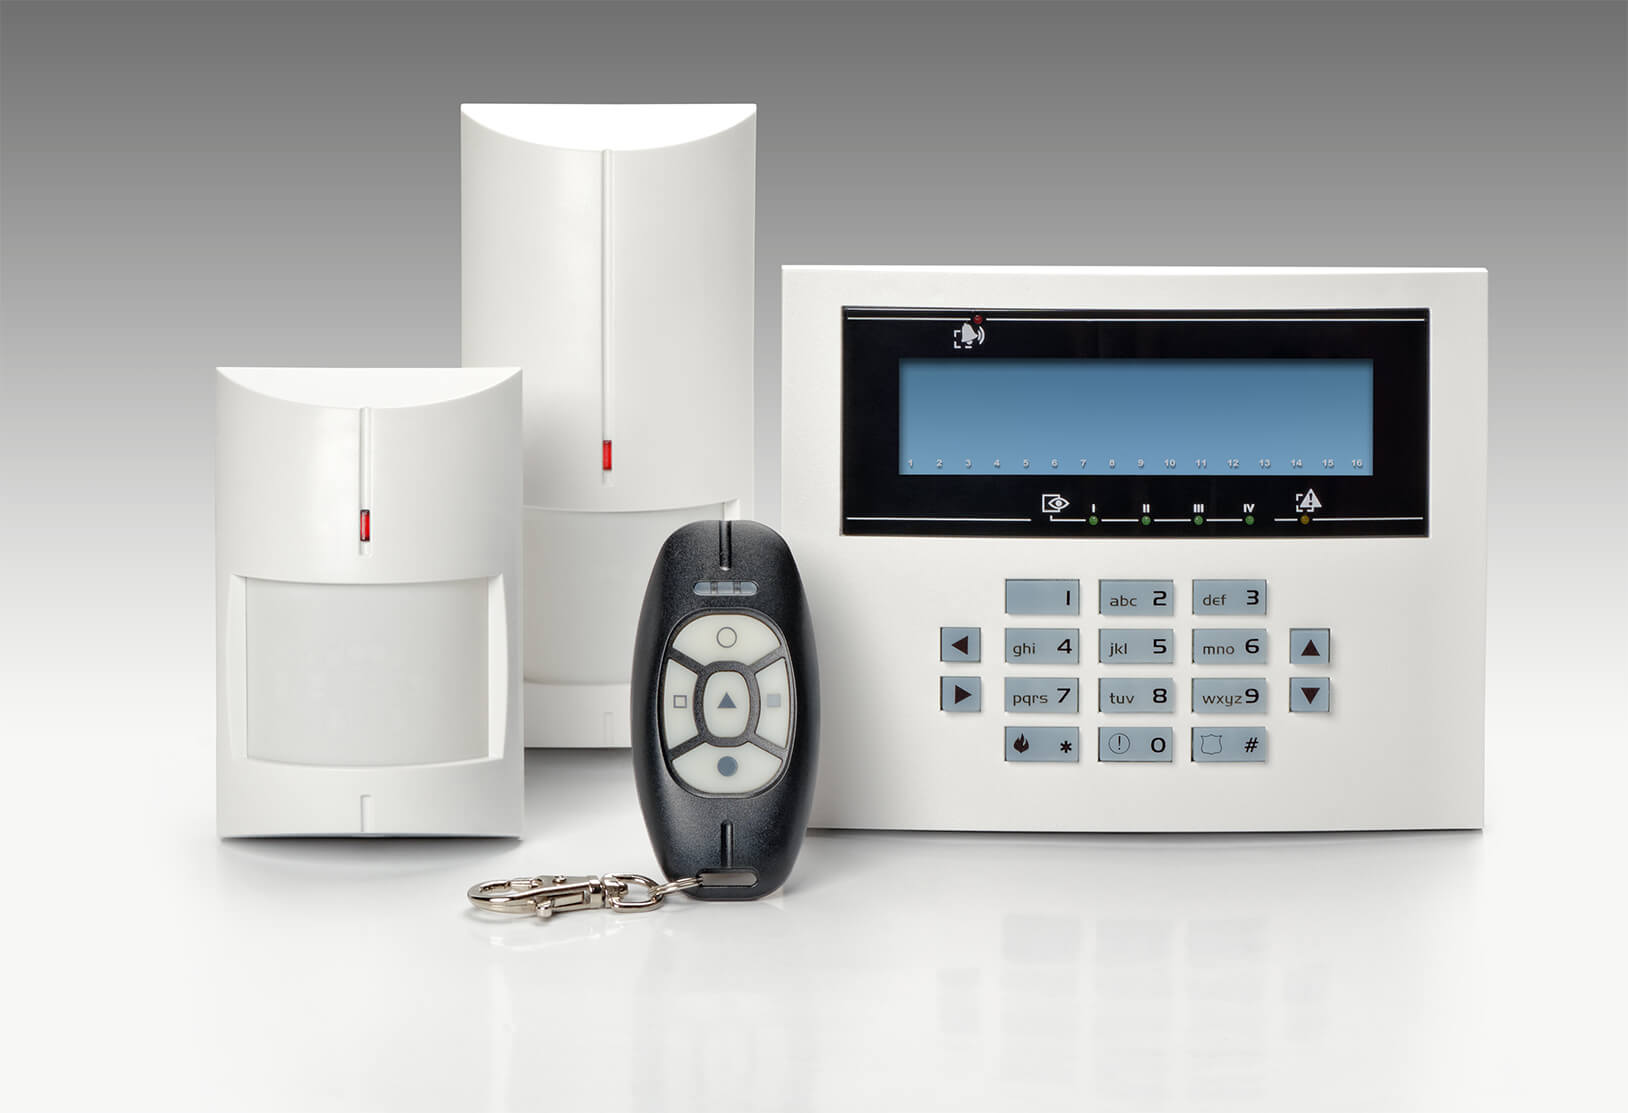 Commercial Burglar Alarms For Business in Lambeth SW9  - Local Lambeth SW9 burglar alarm company.Call 02078872244 - Dedicated to Safety & Security. Companies, shops and homes ..